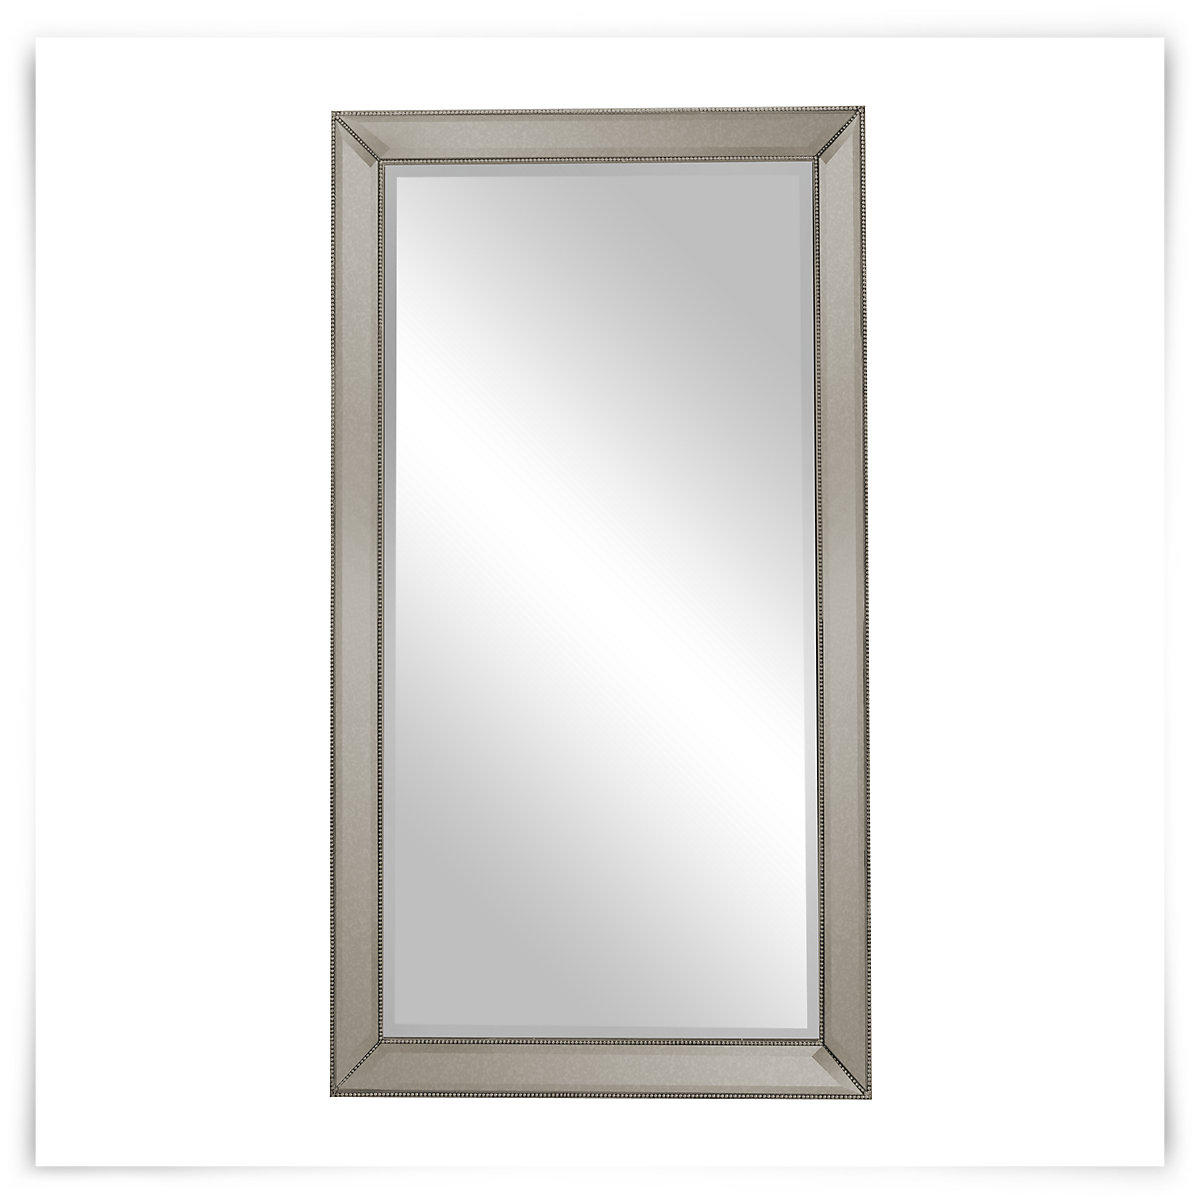 Adiva Silver Leaning Mirror